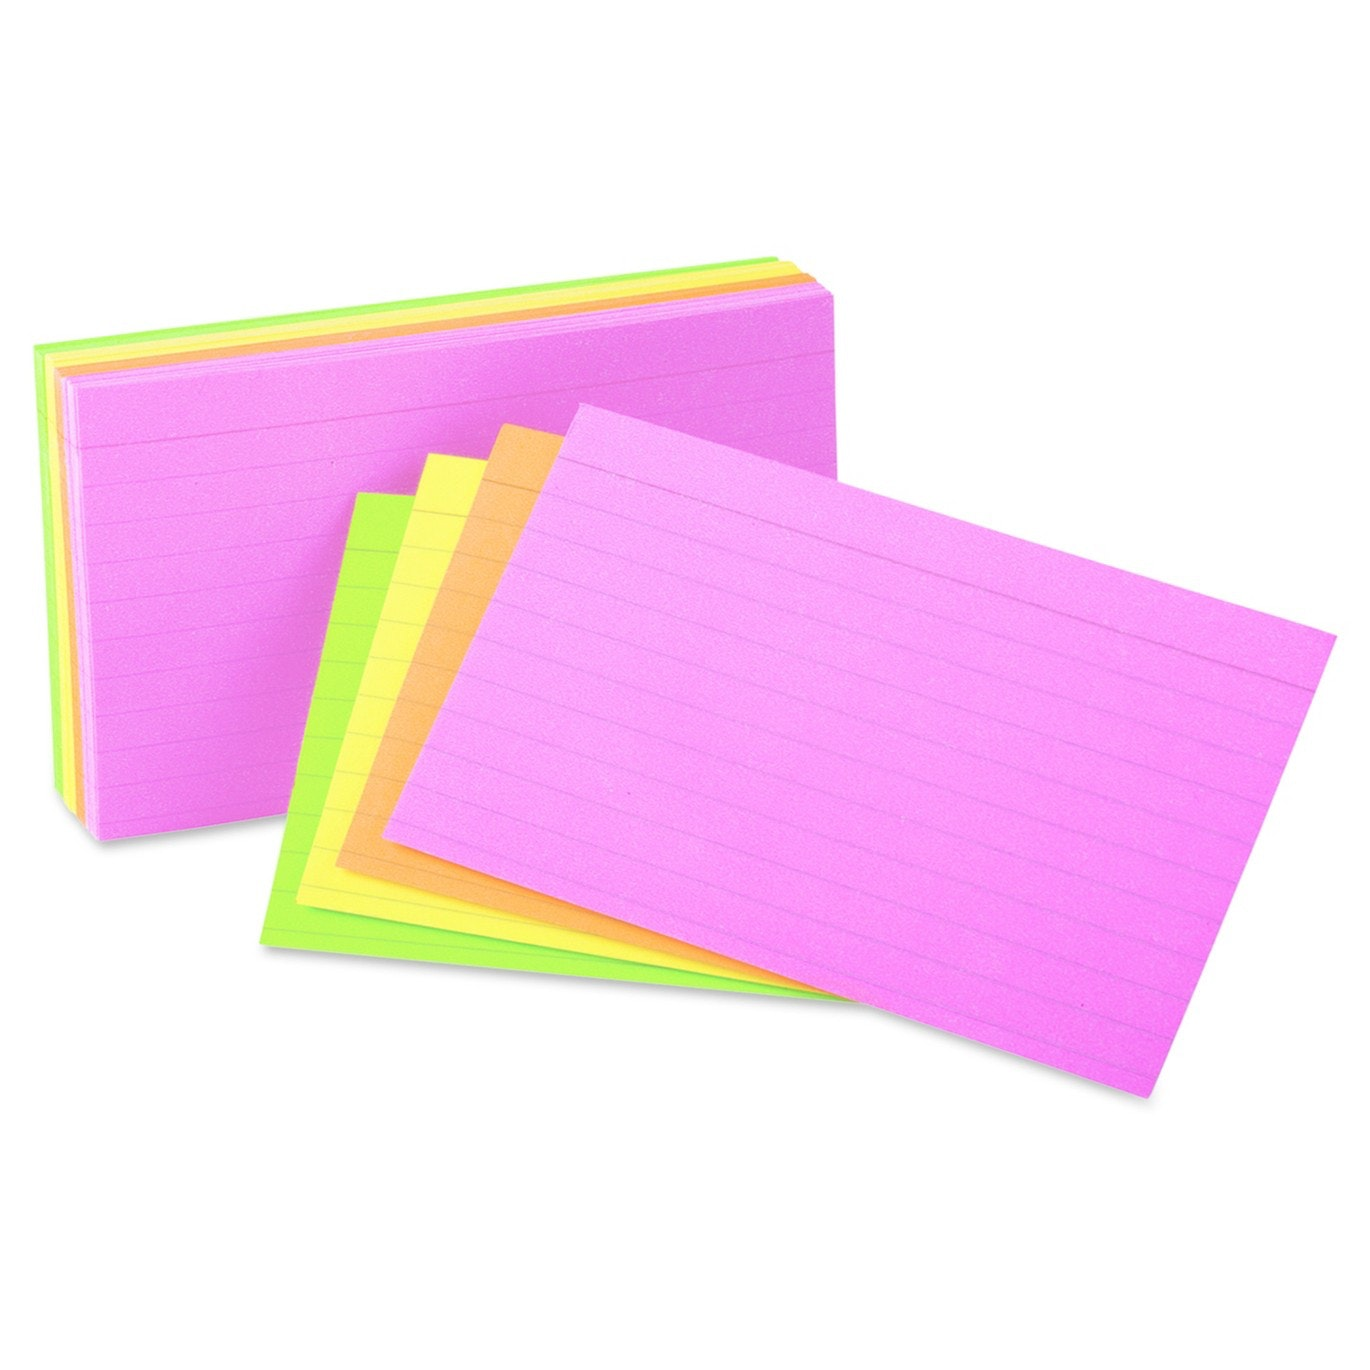 These helpful neon index cards for notes and presentations